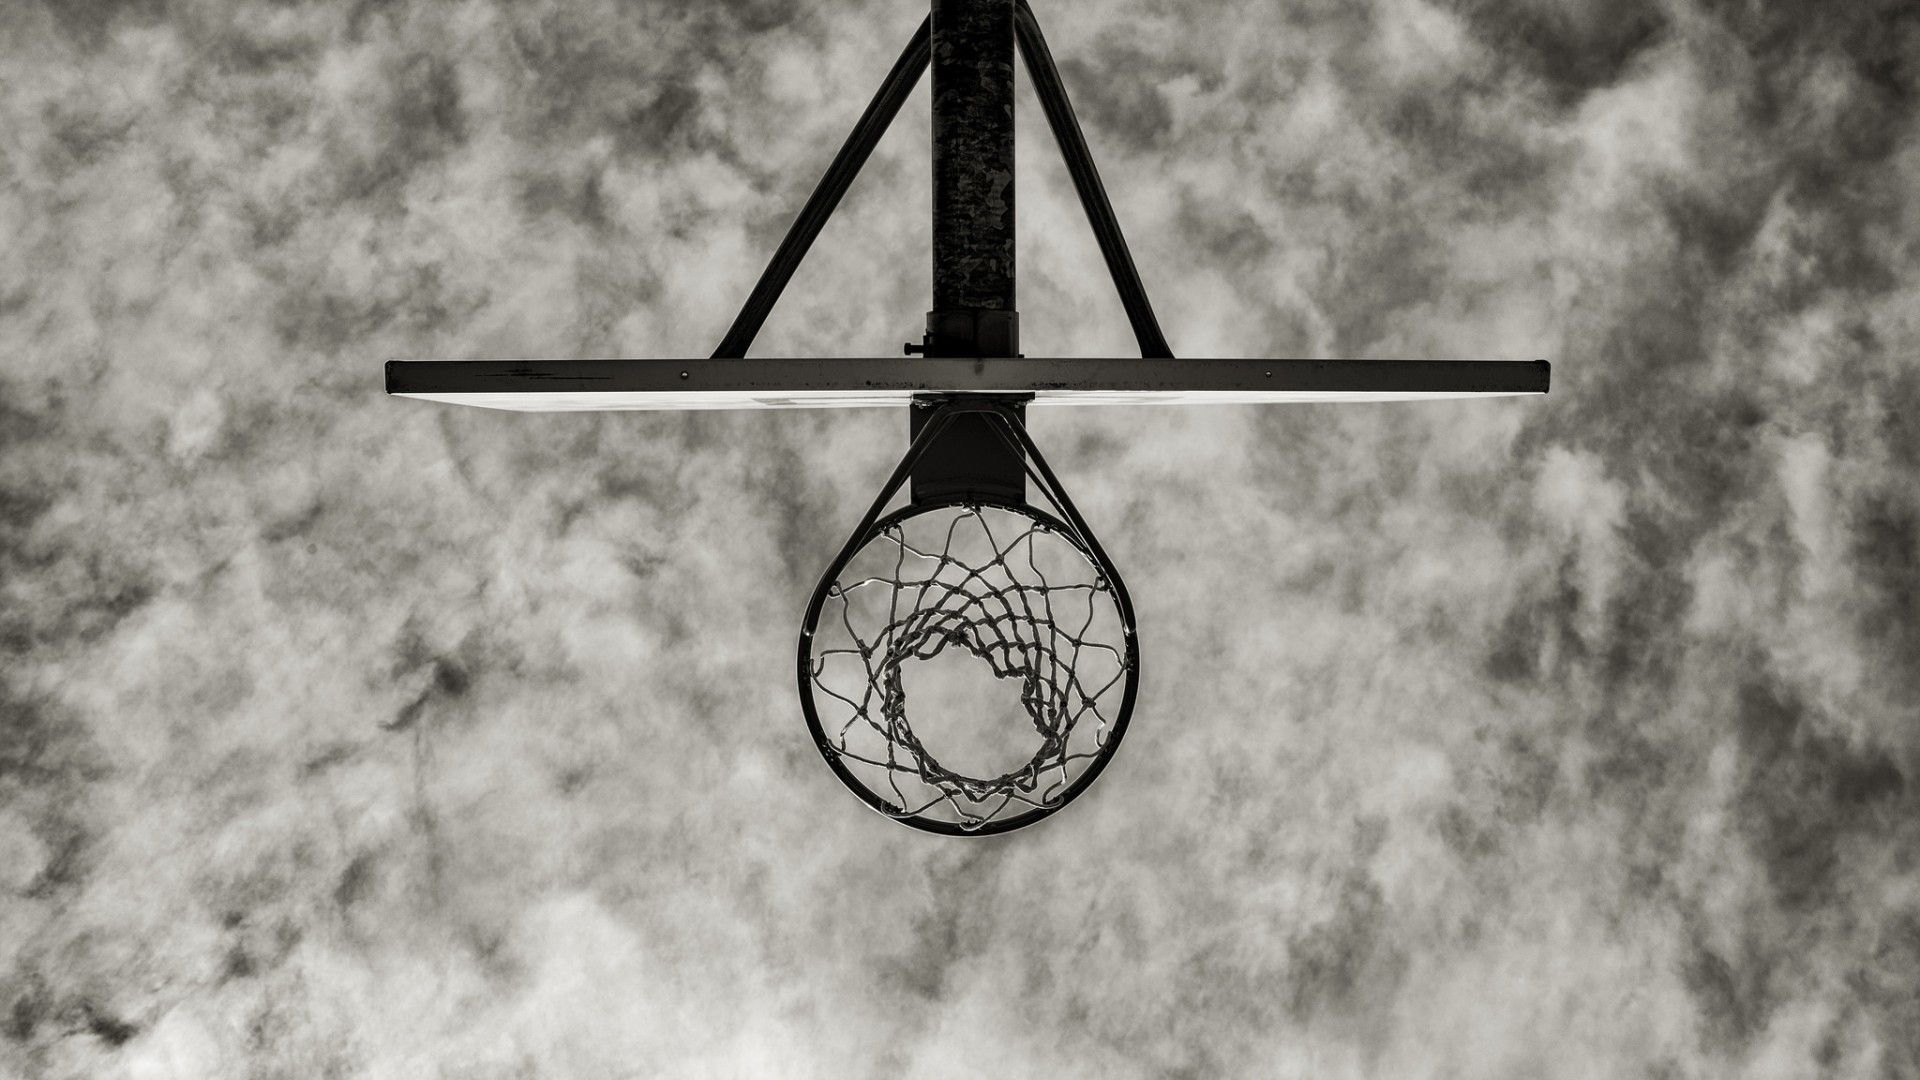 Basketball Court Backgrounds Hd 2021 Basketball Wallpaper Basketball Wallpaper Outdoor Basketball Court Basketball Pictures